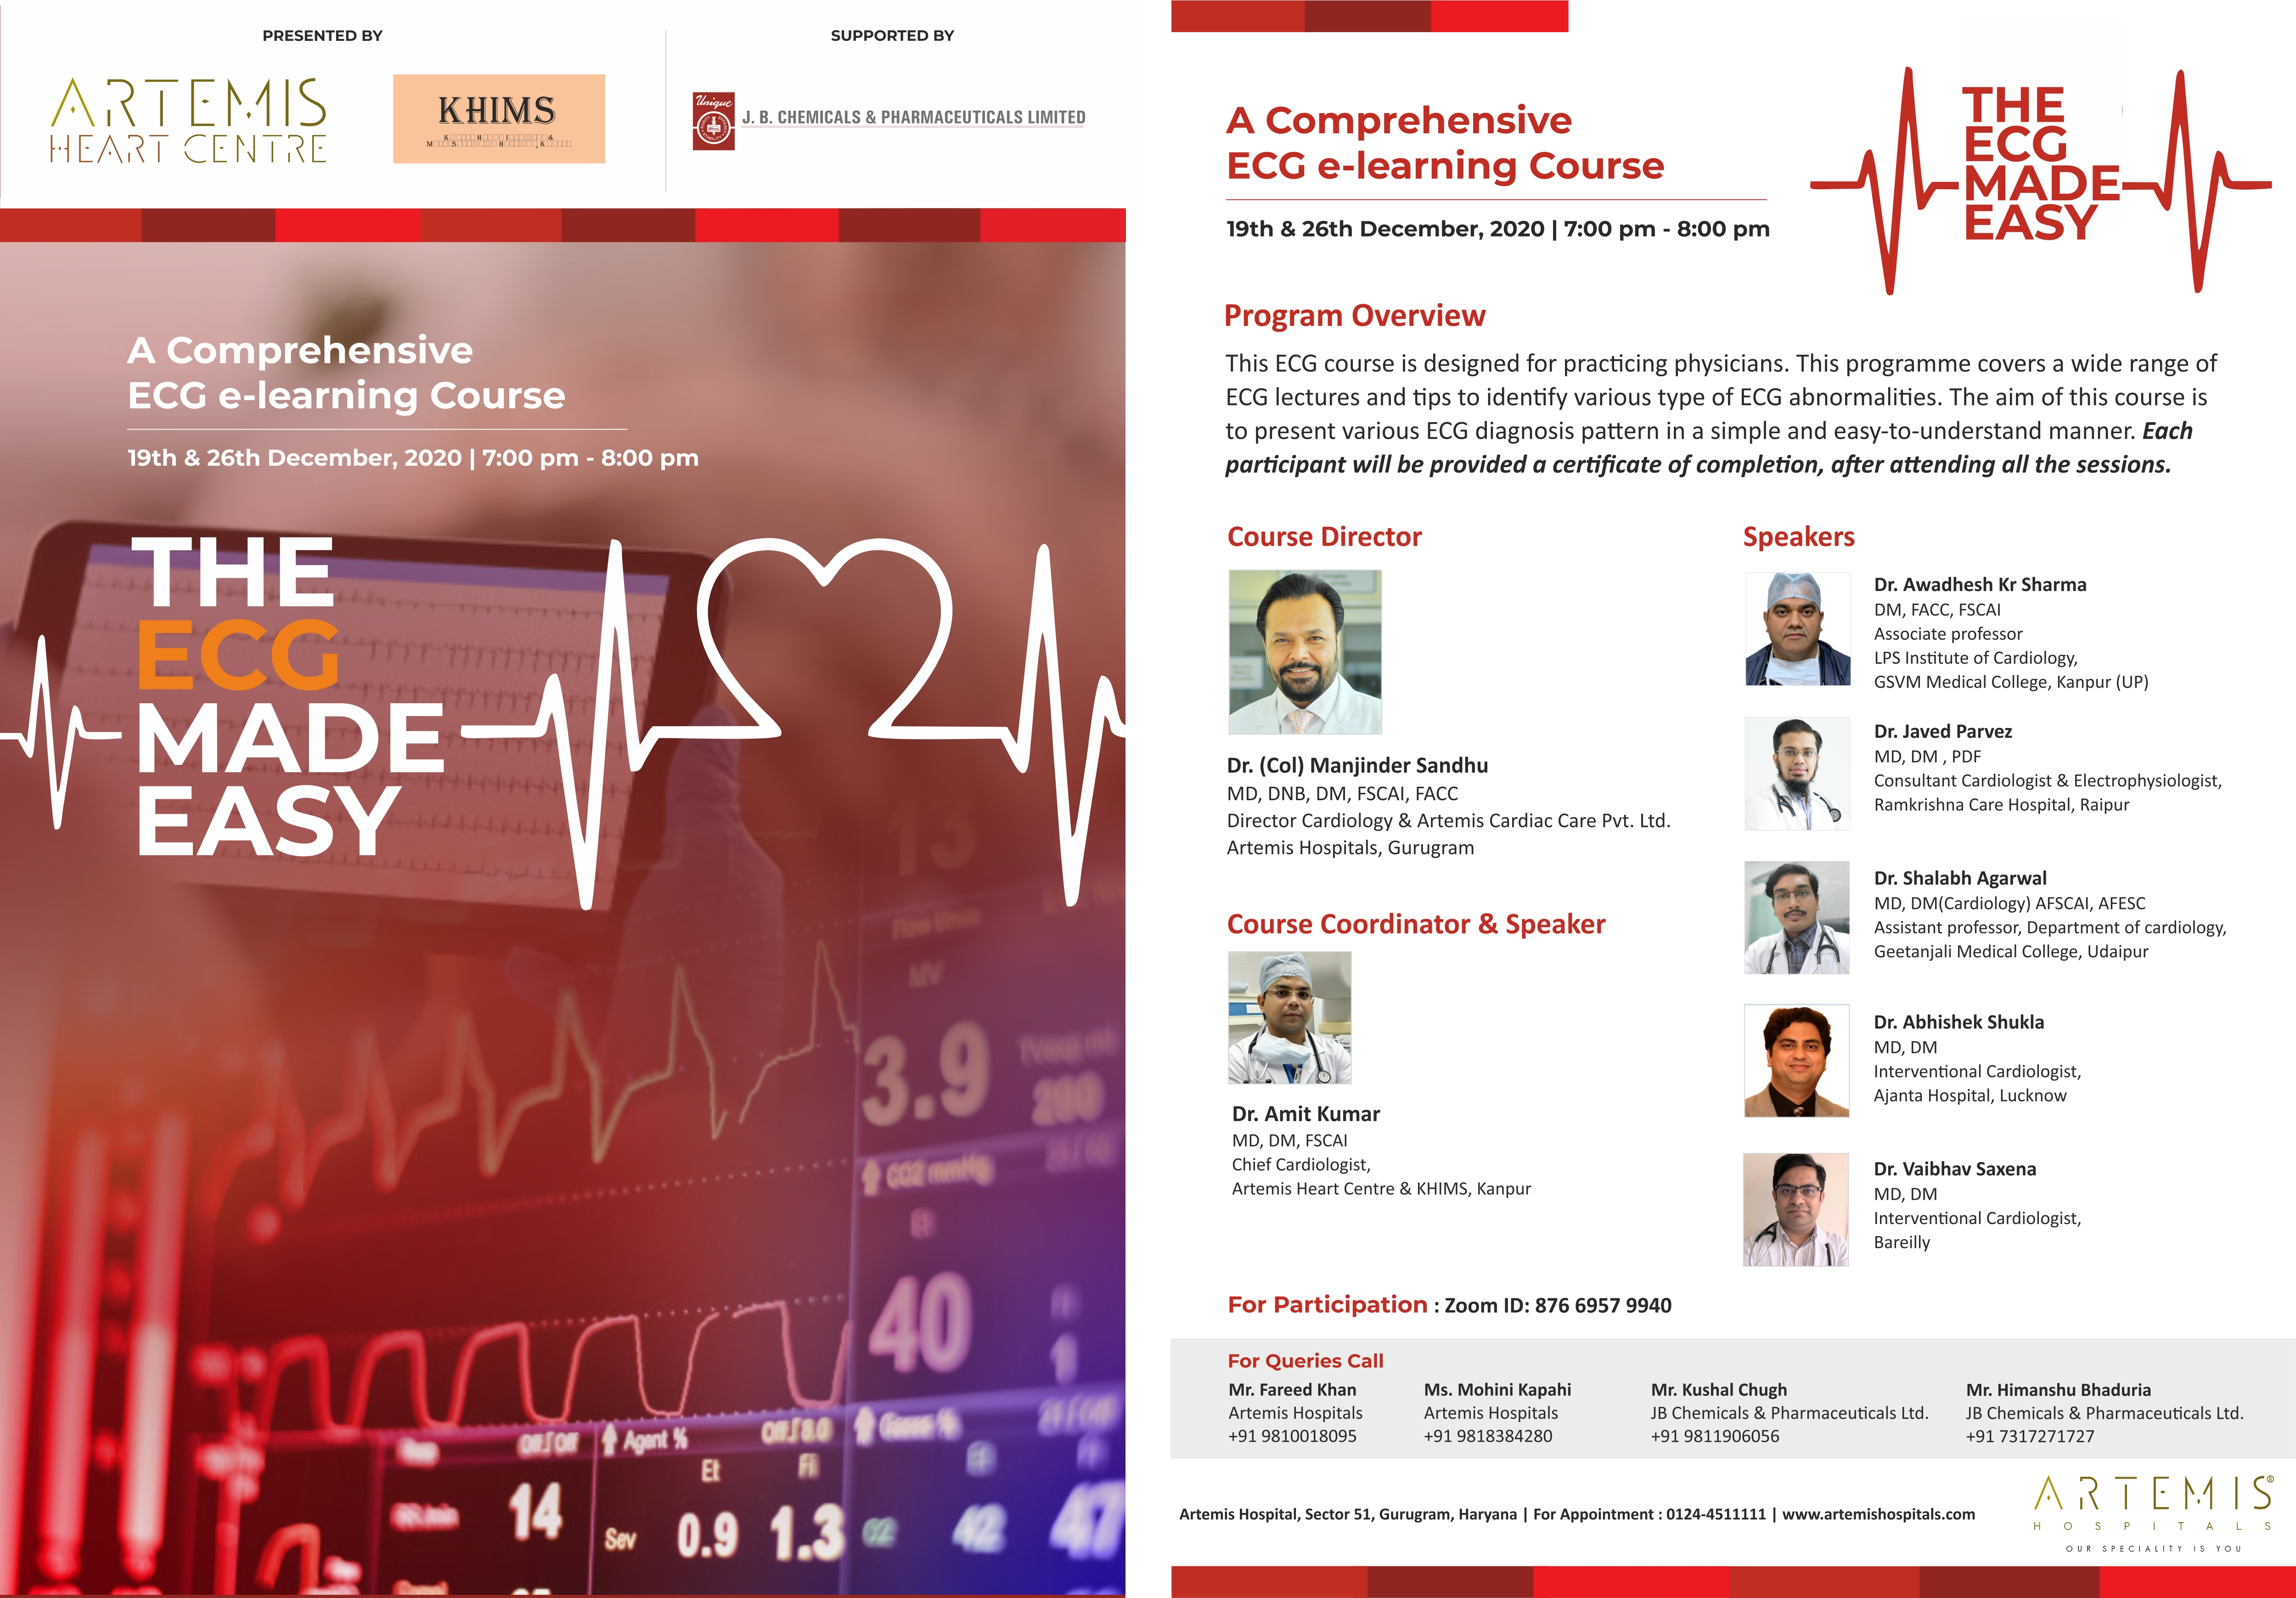 a-comprehensive-ecg-e-learning-course